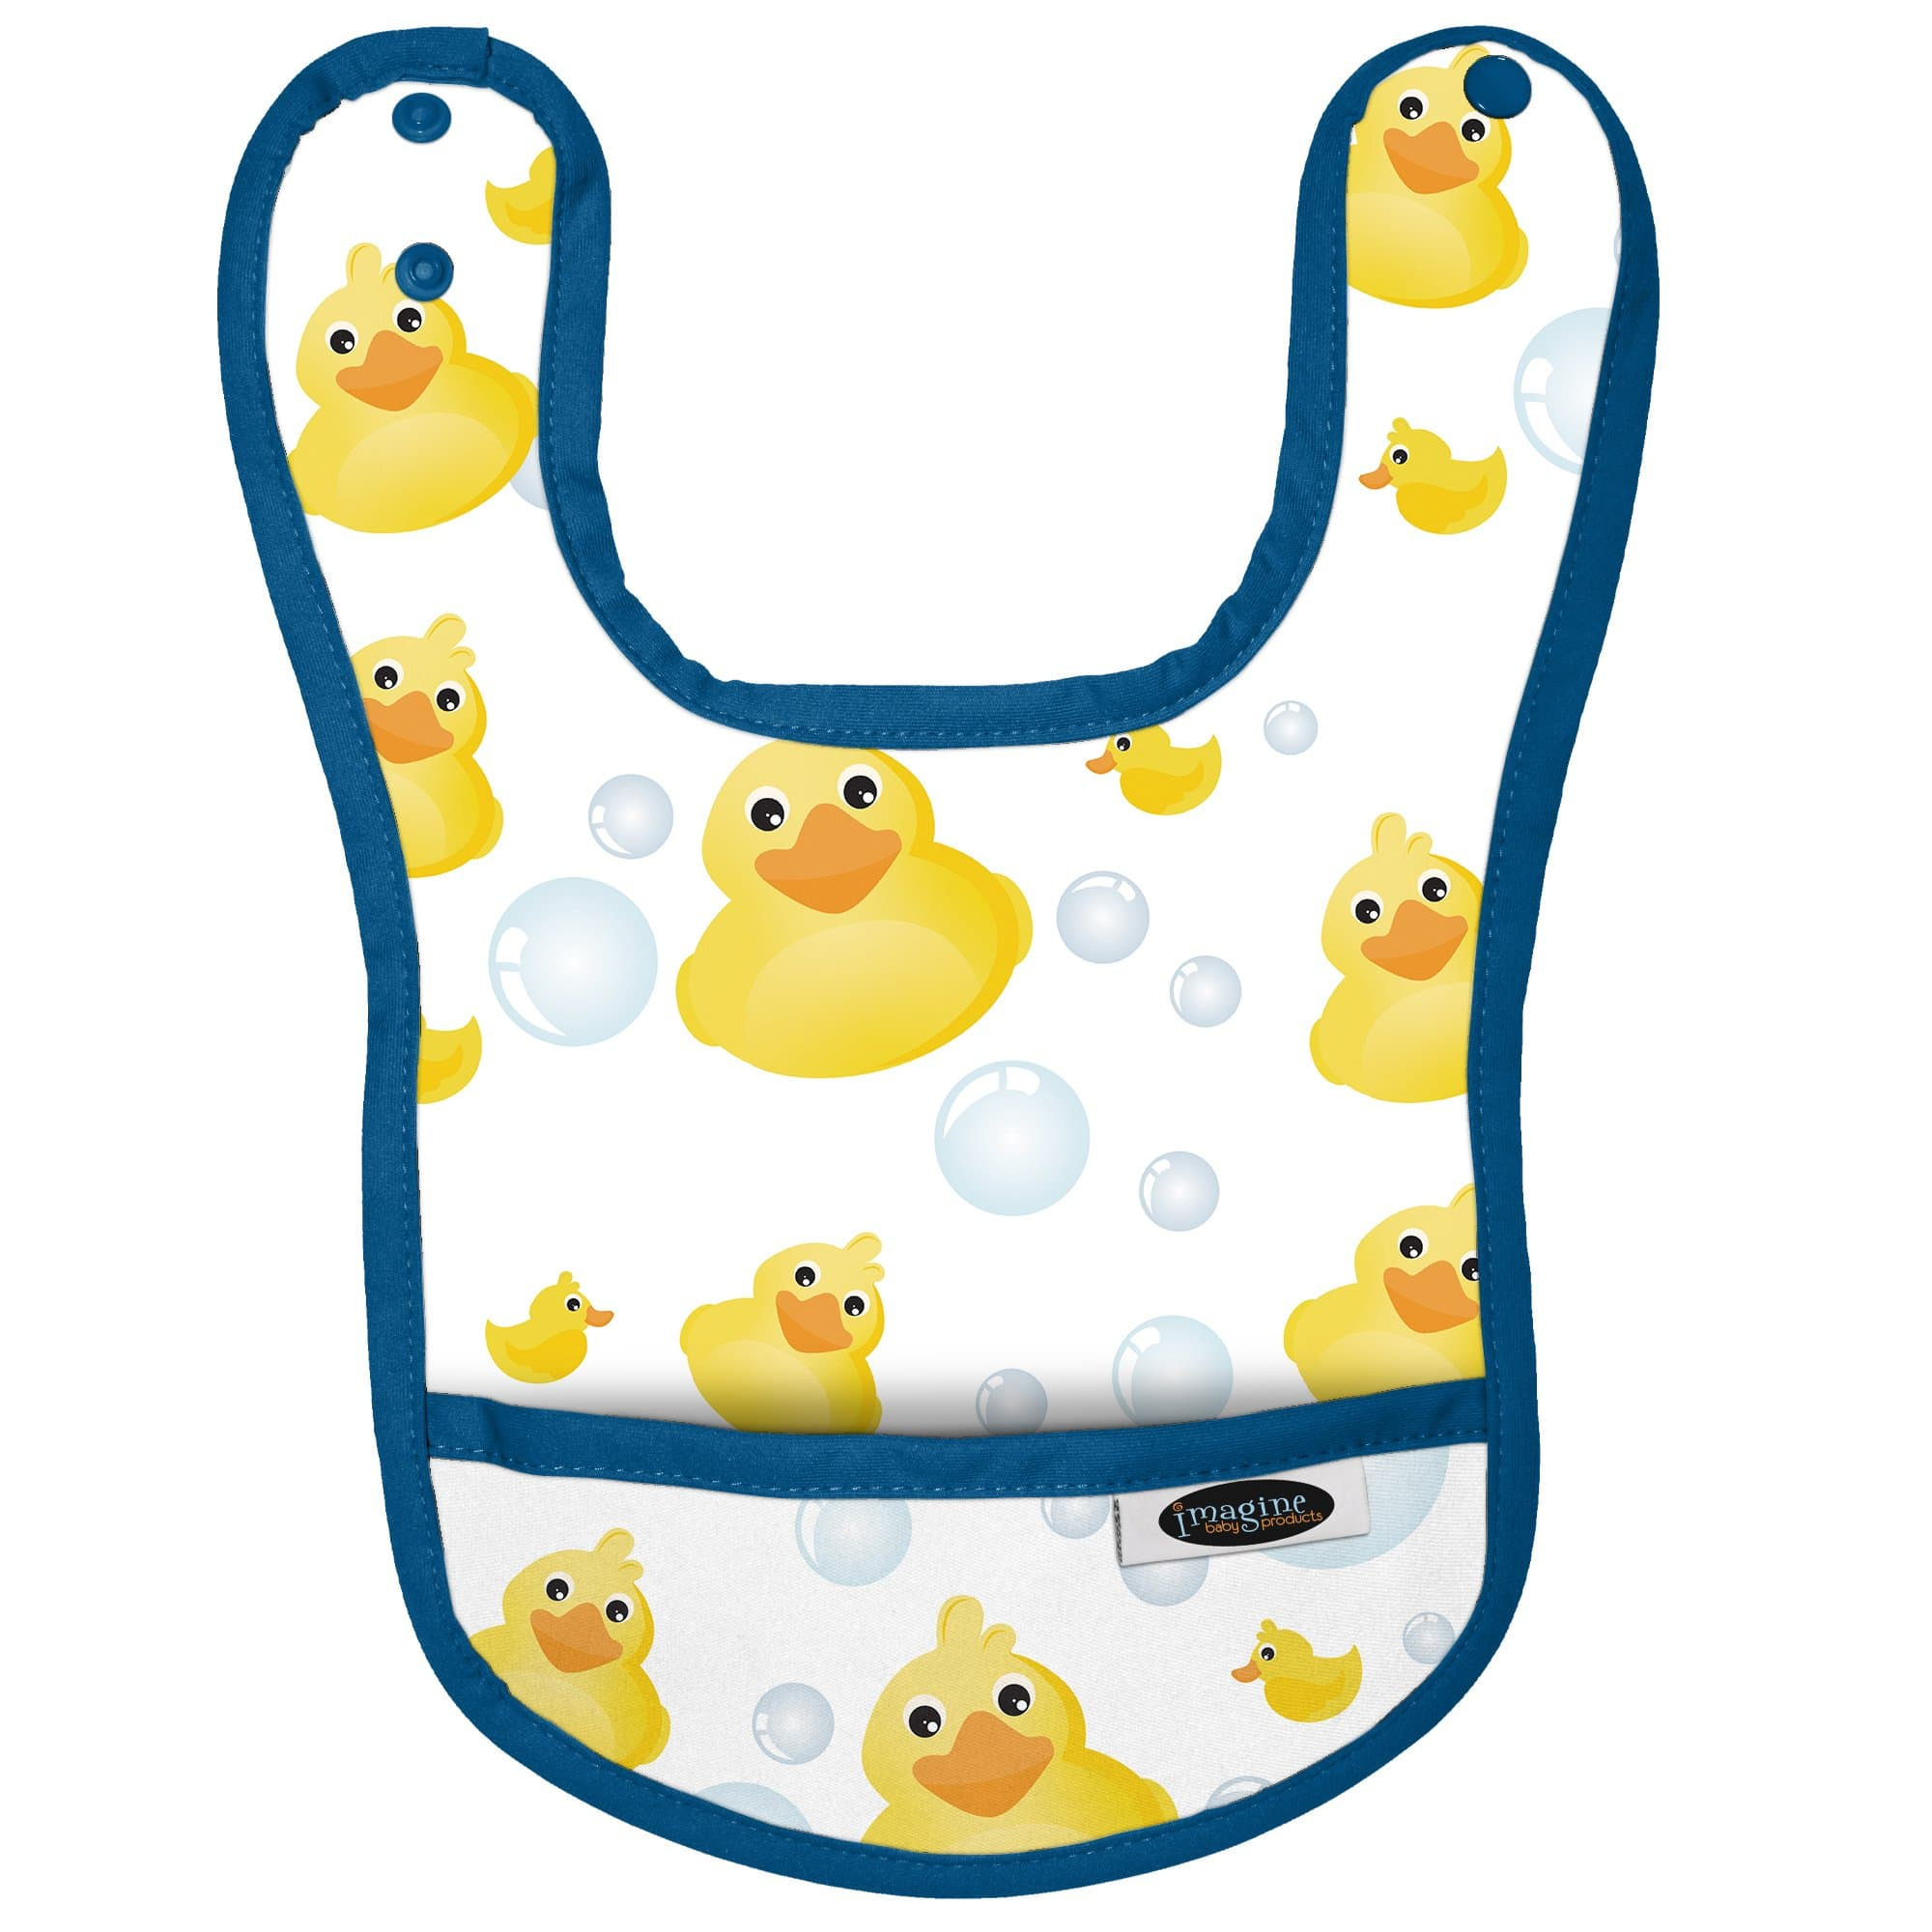 Imagine Waterproof Bib - Splish Splash